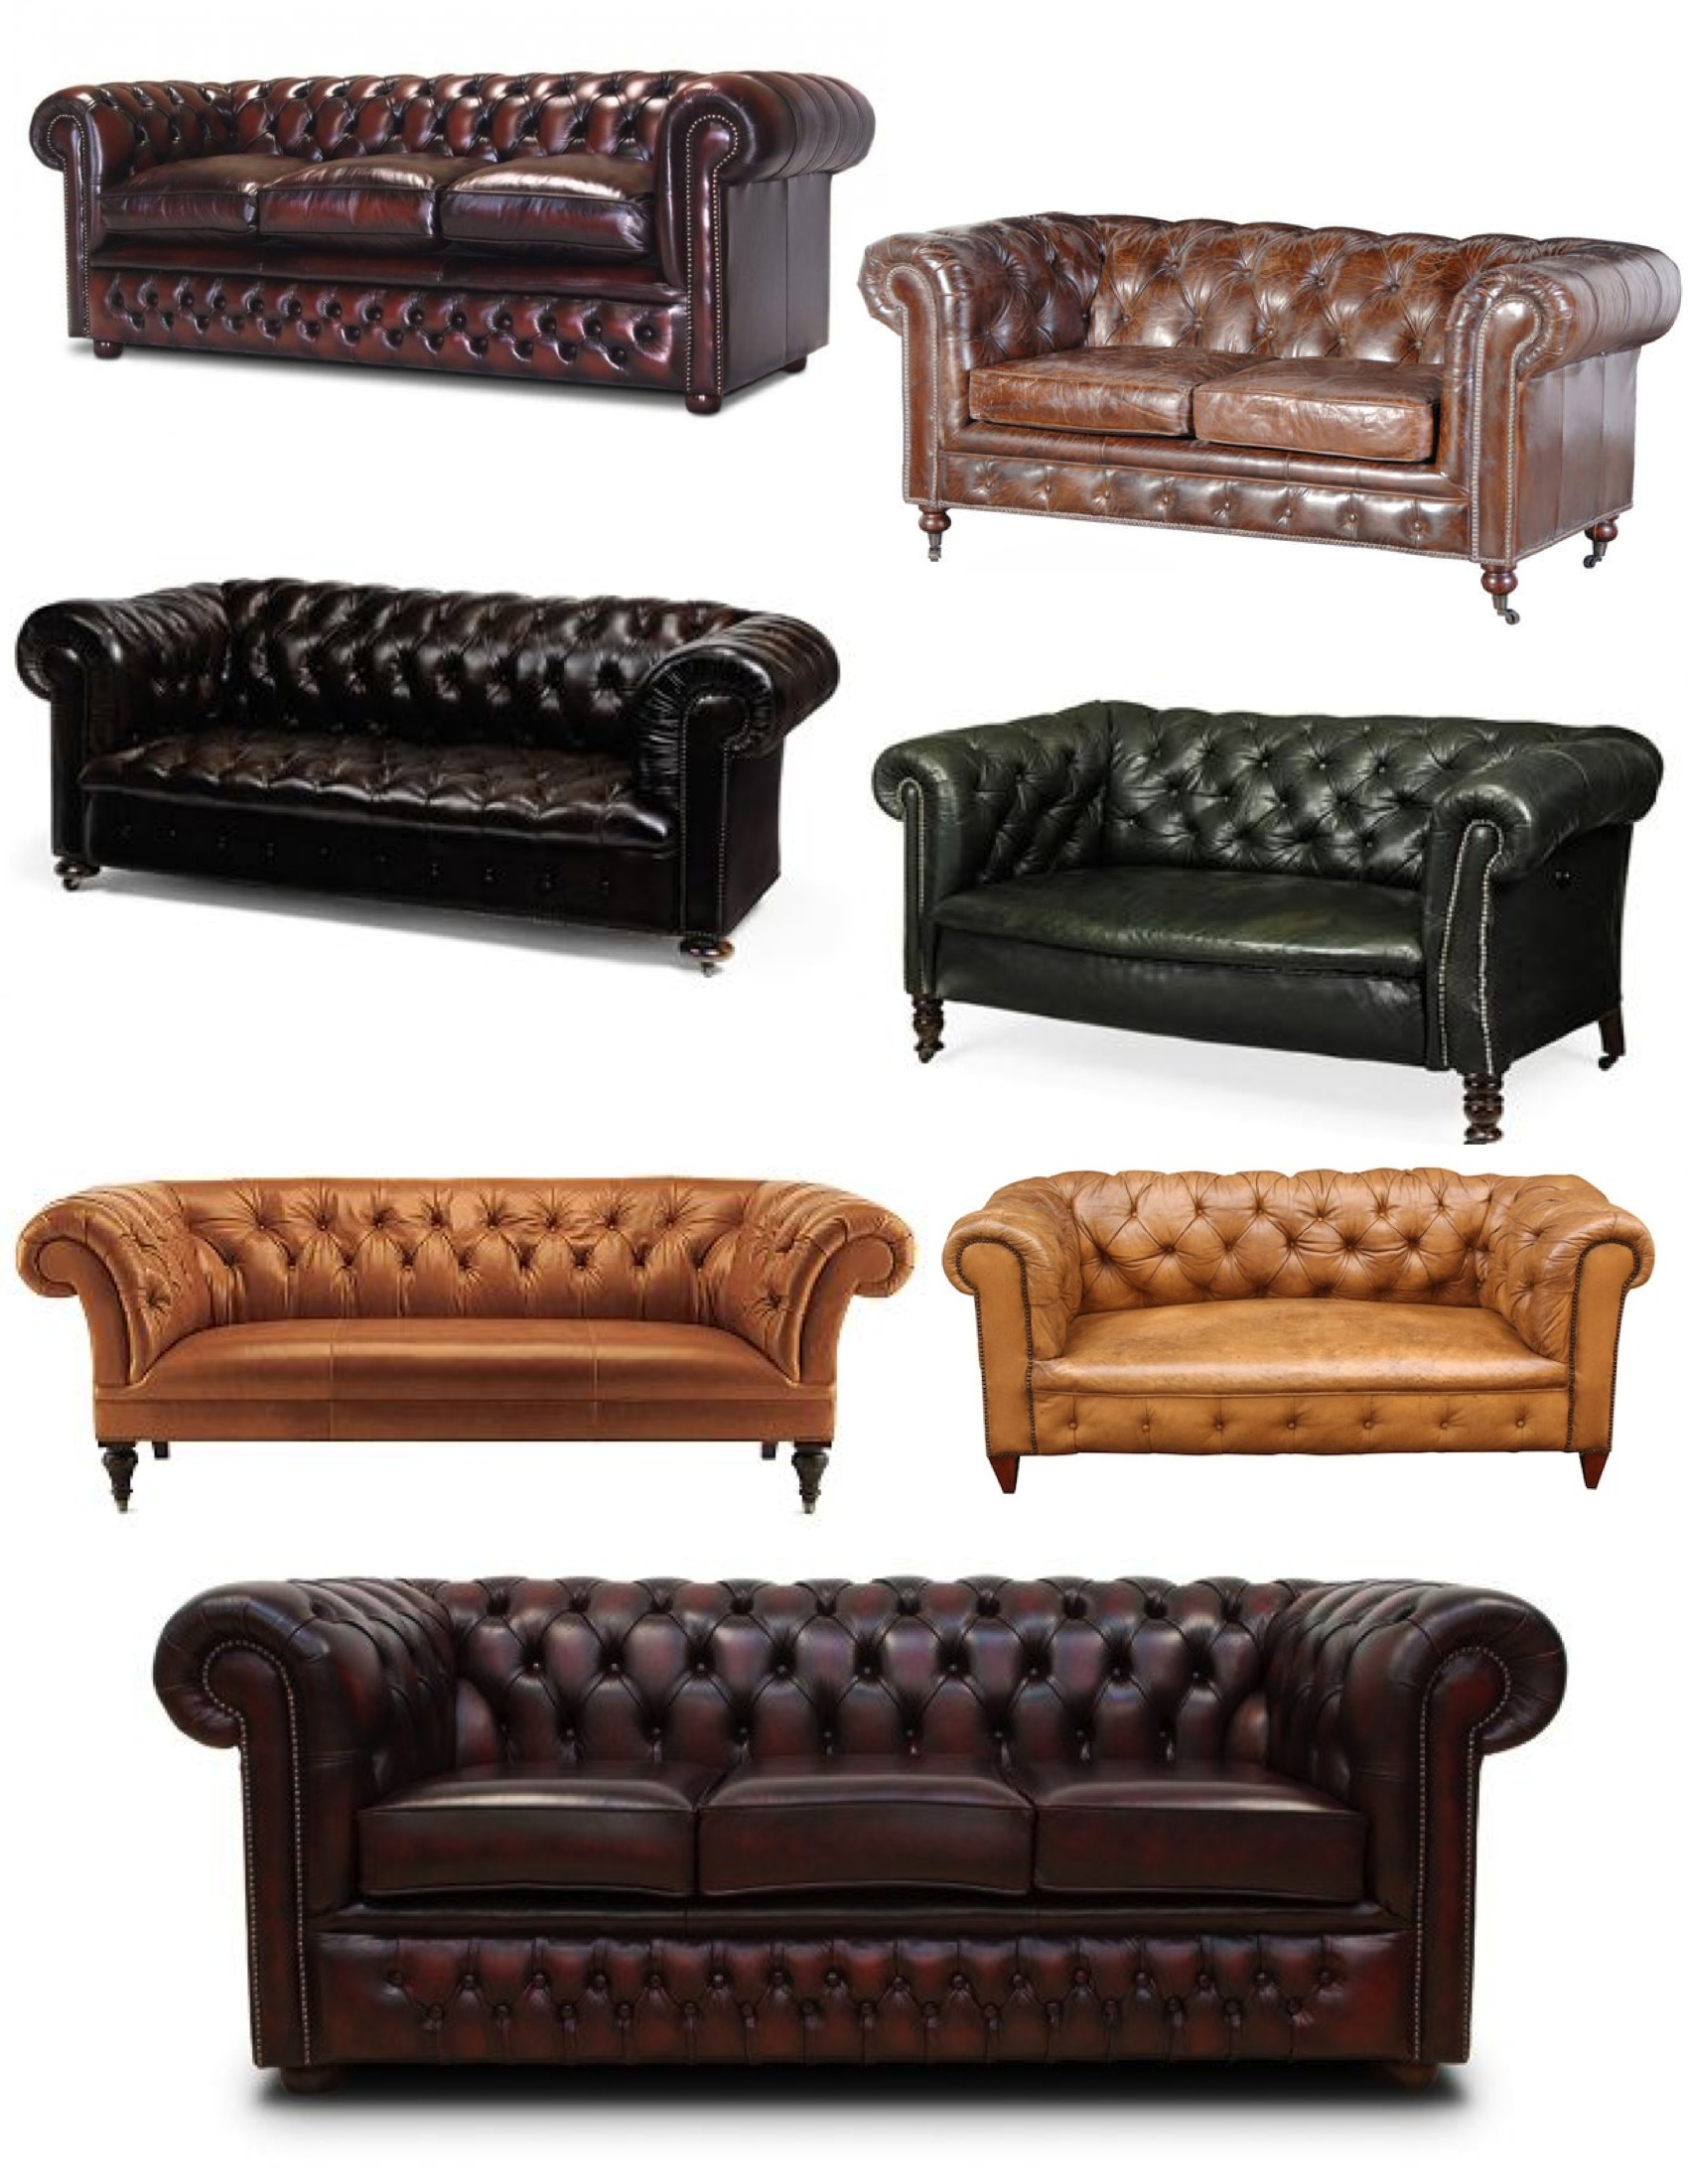 Legendary Design& Style The u201cChesterfield u201d Couch House Appeal